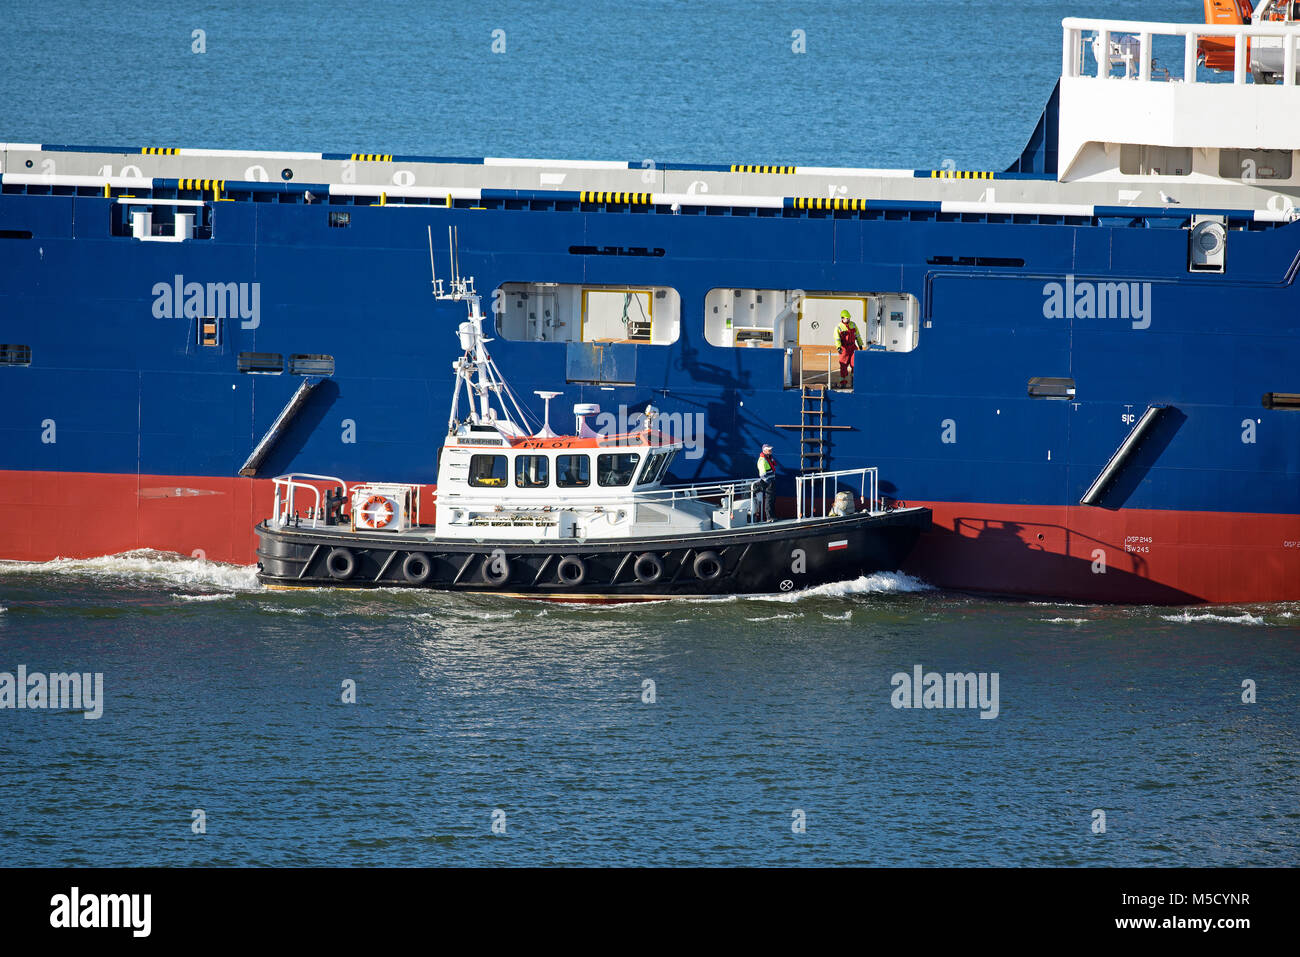 The Vestland Cetus Offshore North Sea Supply ship depart from Aberdeen escorted by the Sea Shepherd Pilot boat. - Stock Image